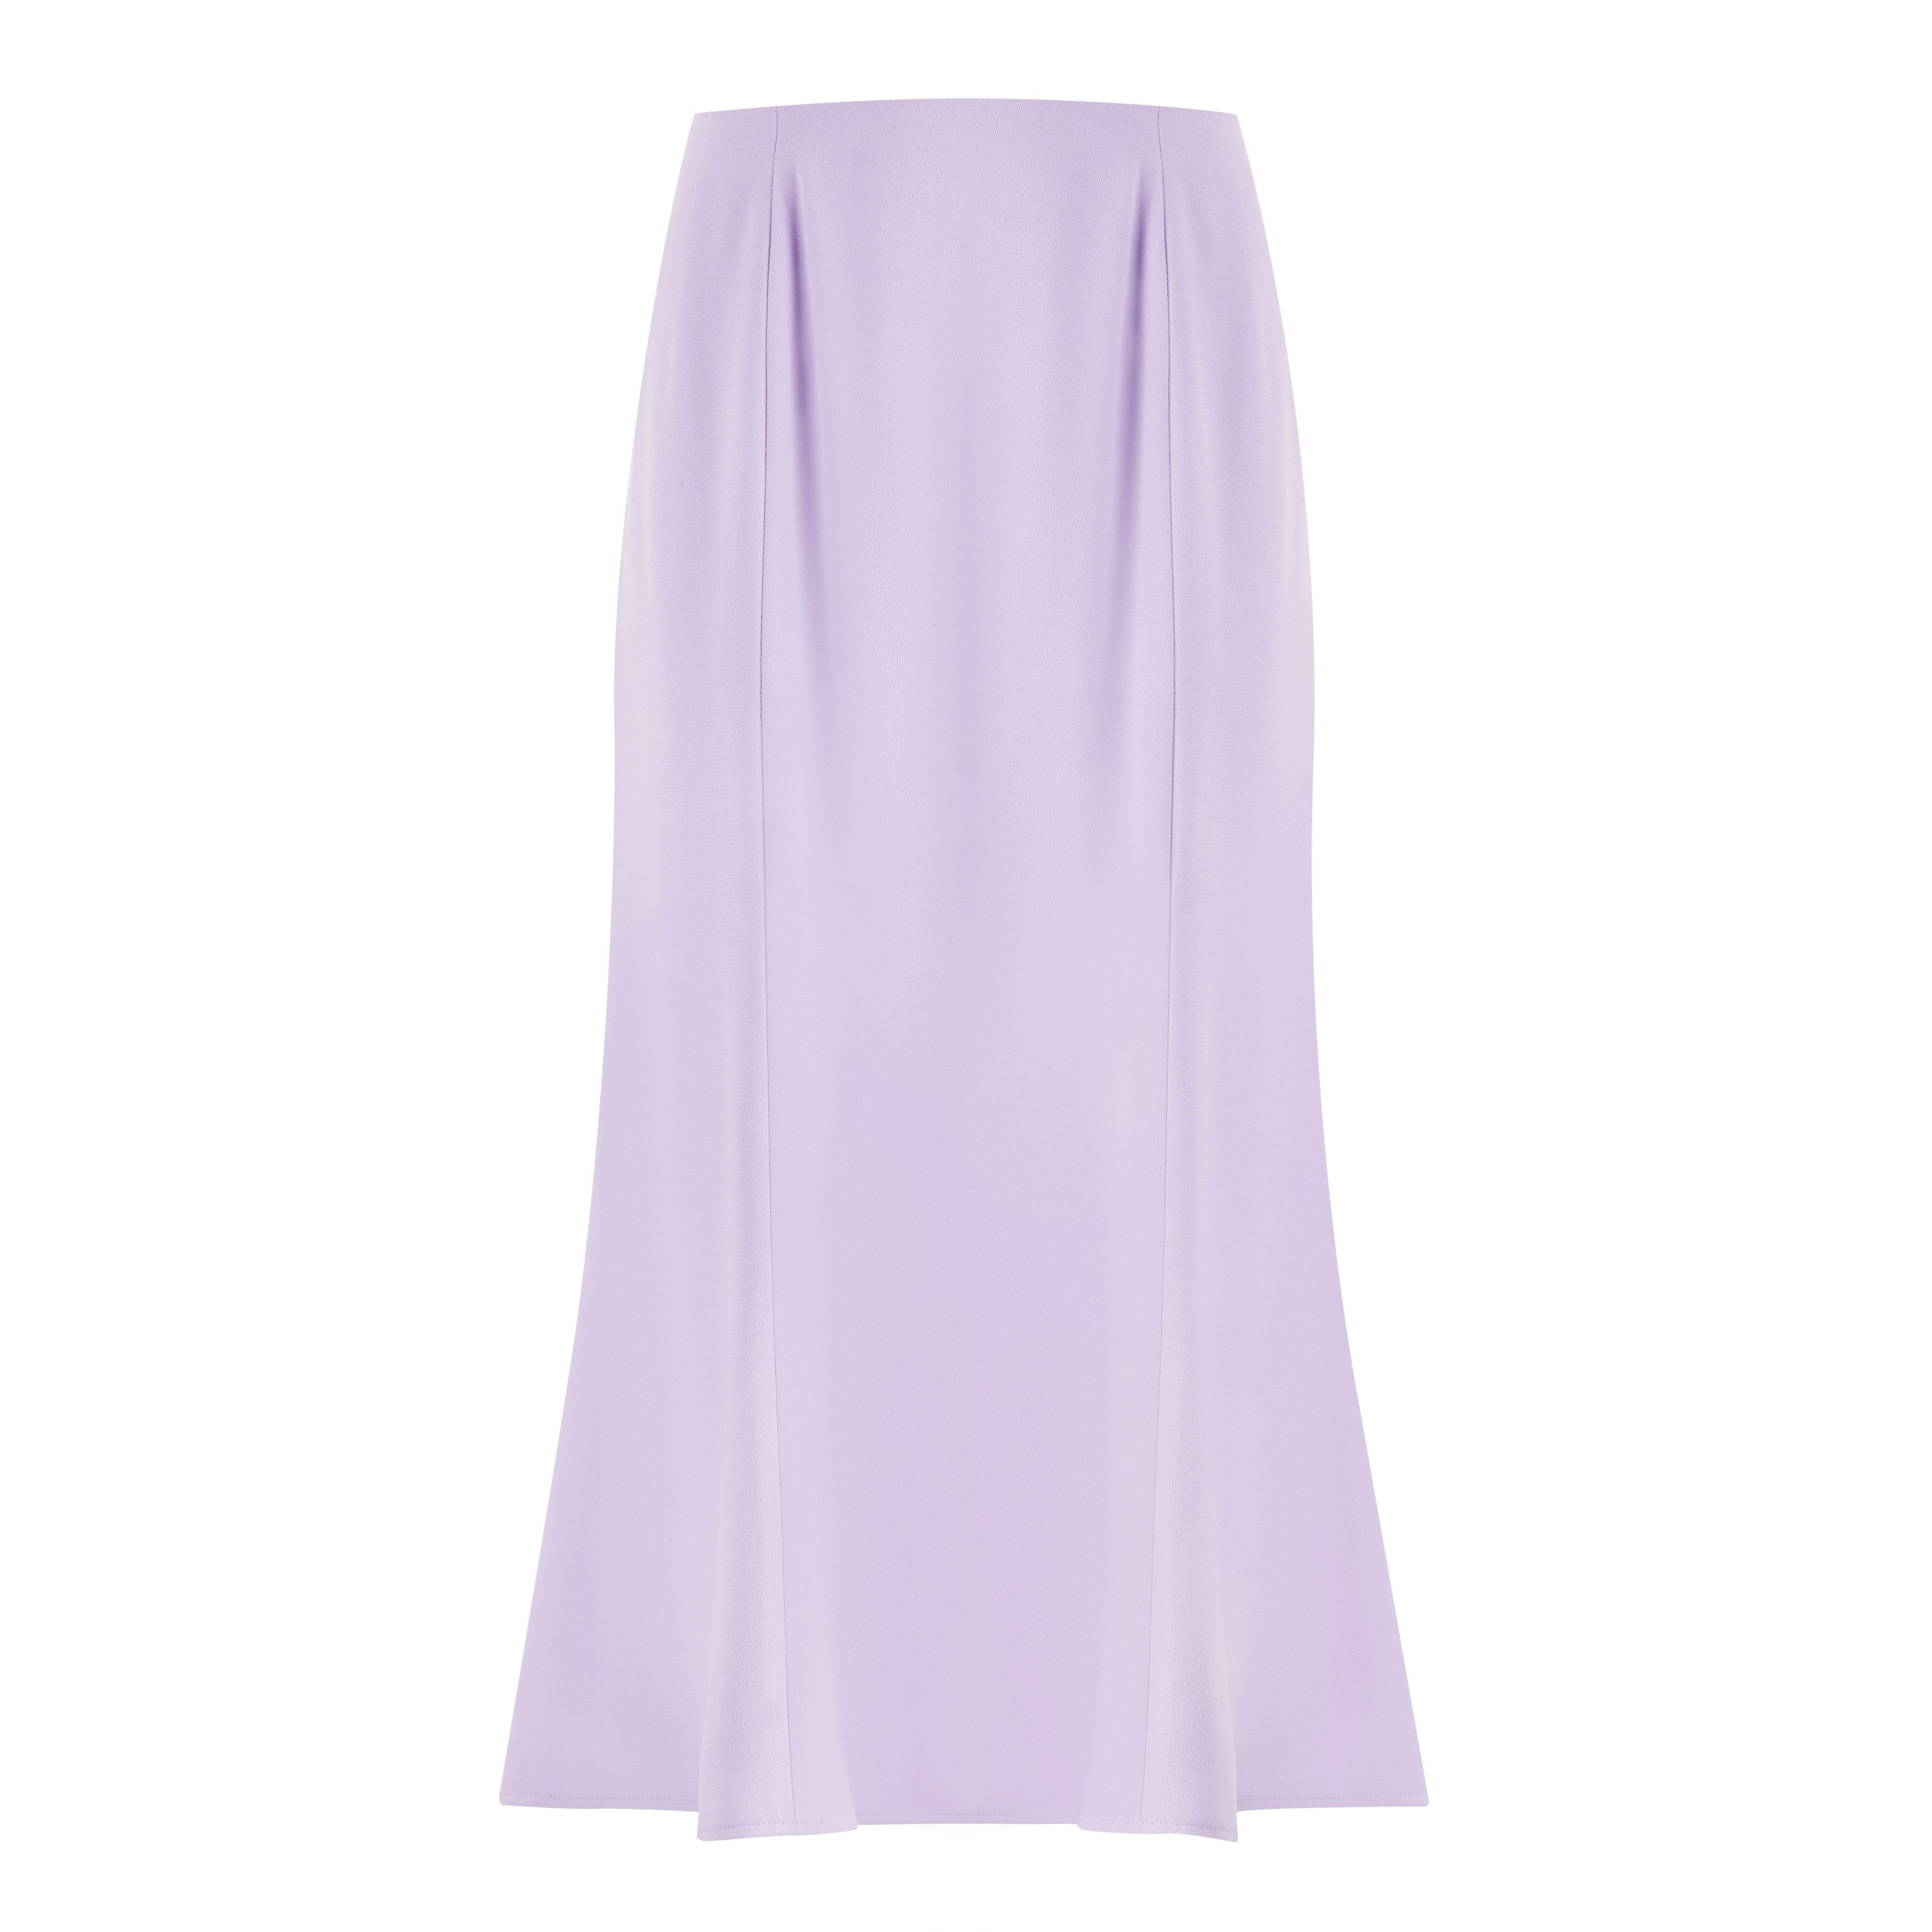 Lilac tailored fit and flare skirt